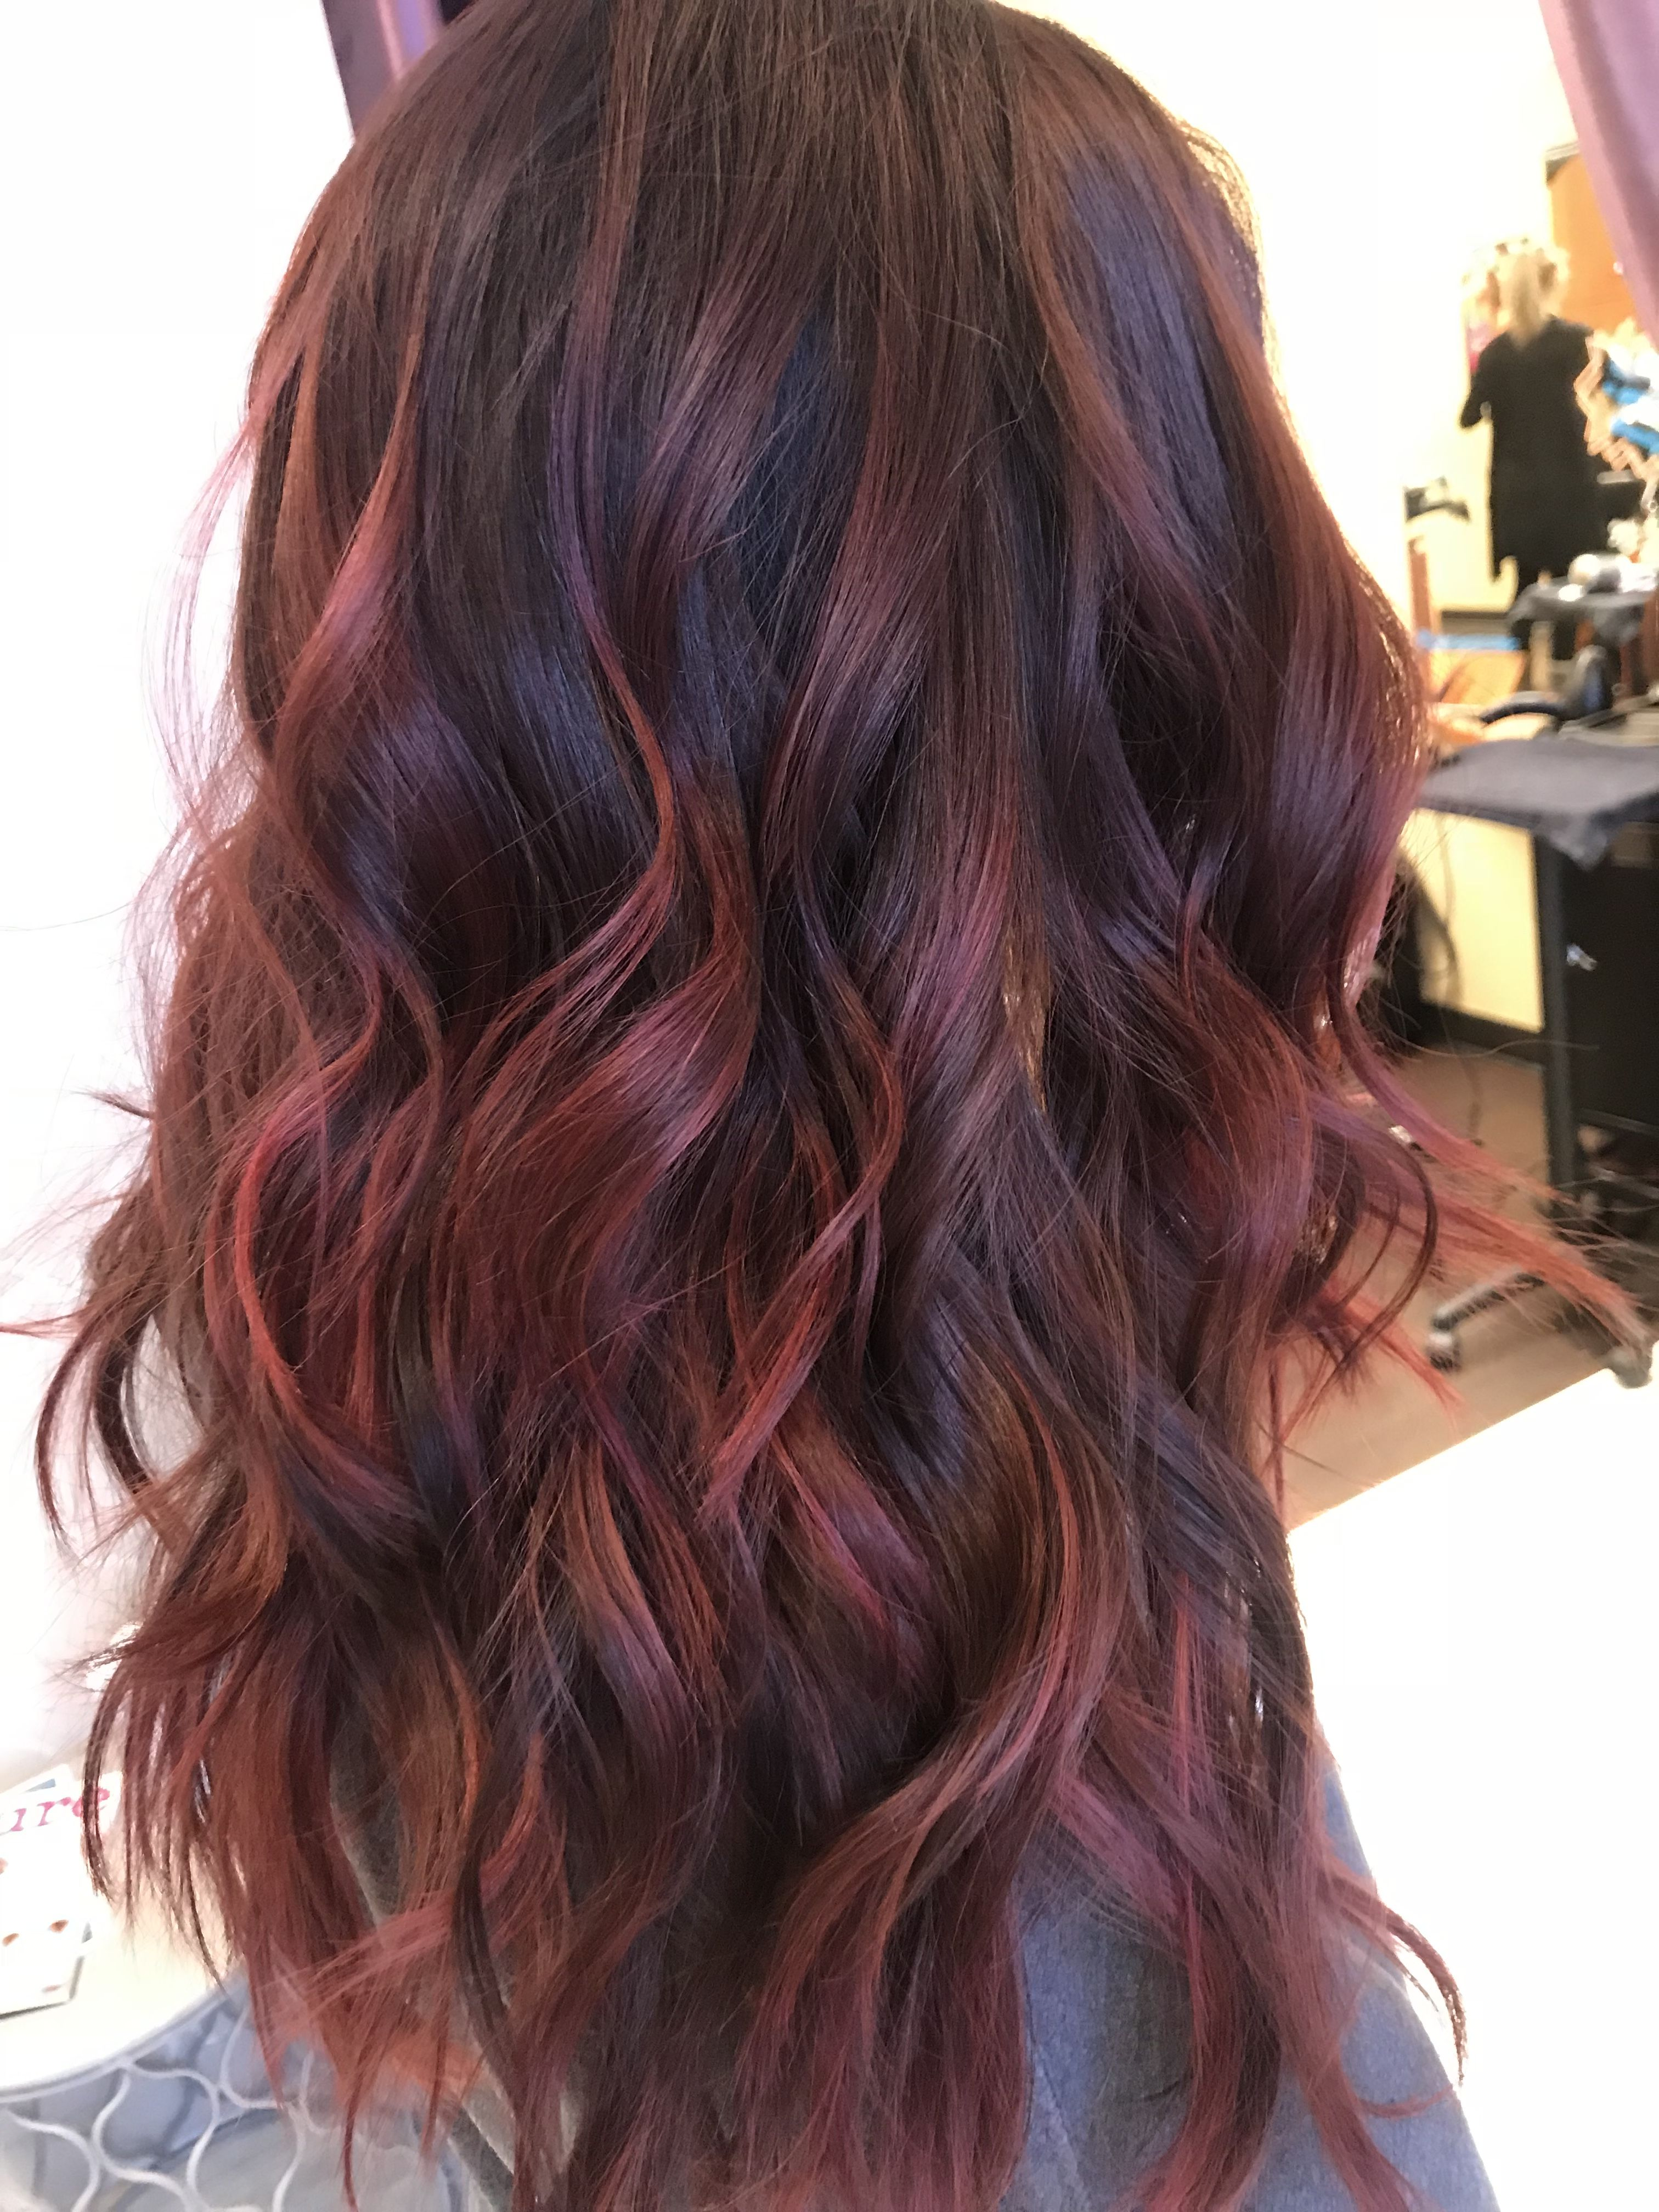 Dark Brown Hair With Red Highlights Absolute Loving My Hair Red Highlights In Brown Hair Brown Hair With Highlights Red Brown Hair